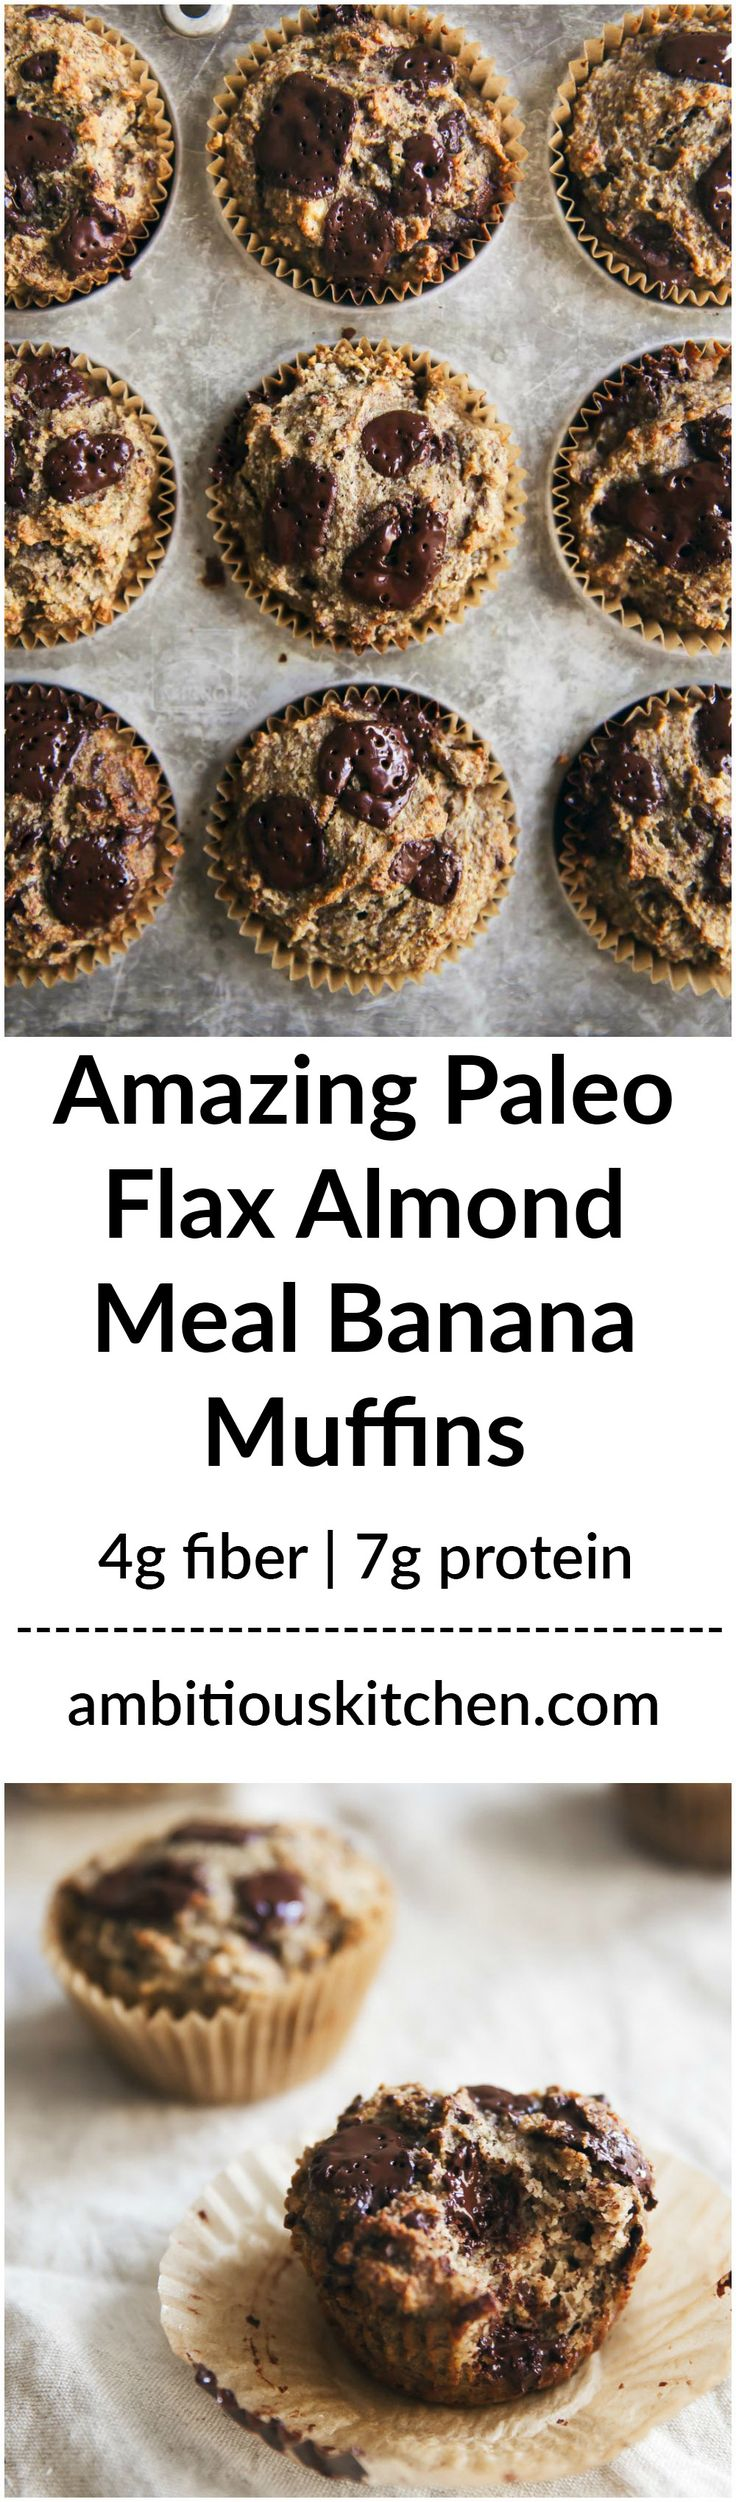 100+ Flaxseed Meal Recipes on Pinterest | Flaxseed Muffins, Flaxseed ...